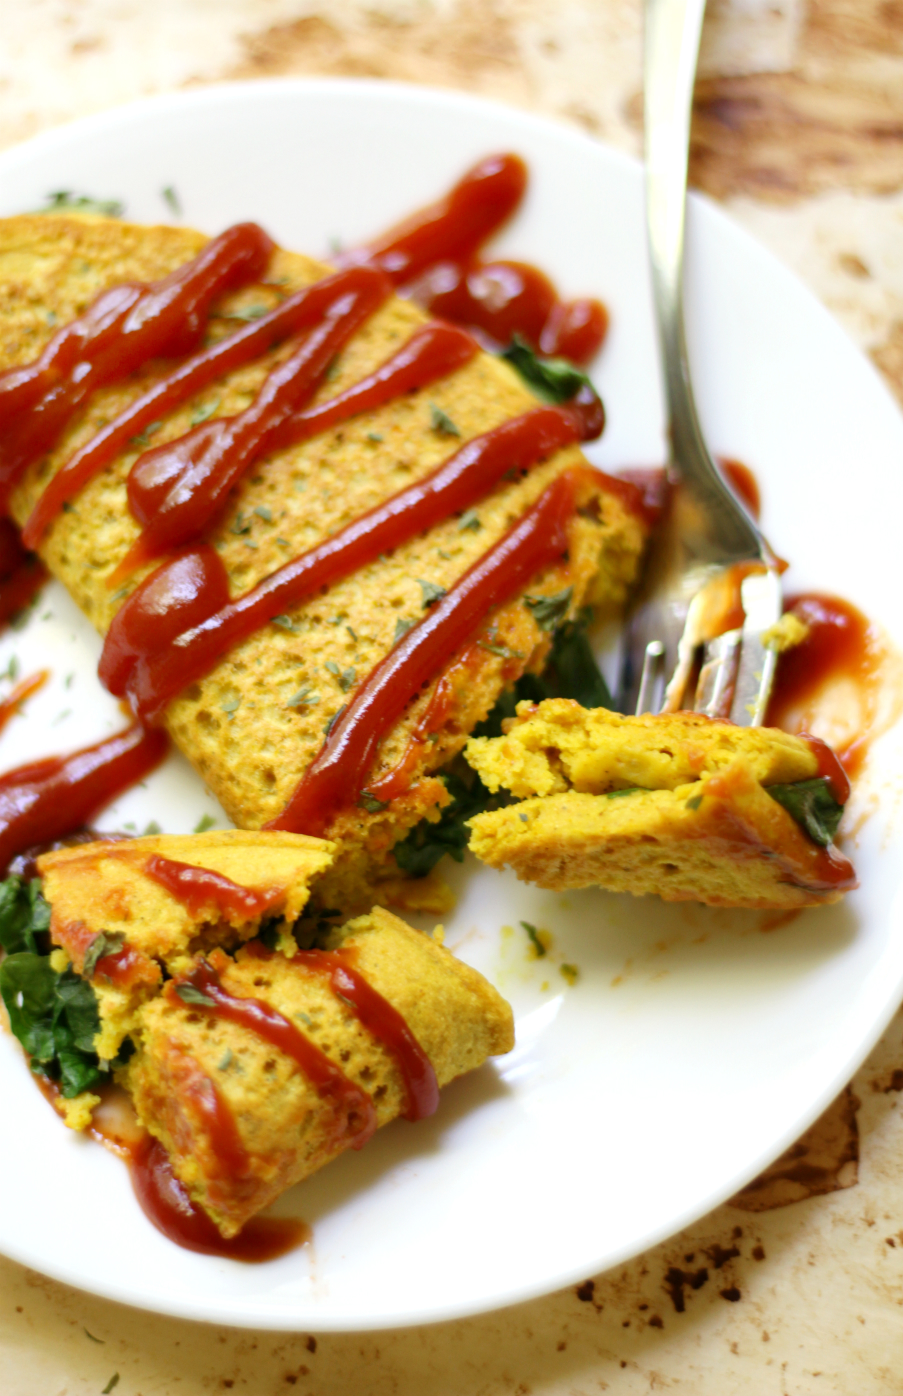 Vegan Chickpea Flour Omelette | Strength and Sunshine @RebeccaGF666 Vegans can have their omelettes too! With chickpea flour and spiked with nutritional yeast, this omelette has just as much protein as the egg version! A vegan chickpea flour omelette, gluten-free and soy-free, is a breakfast recipe to fuel you all day long!